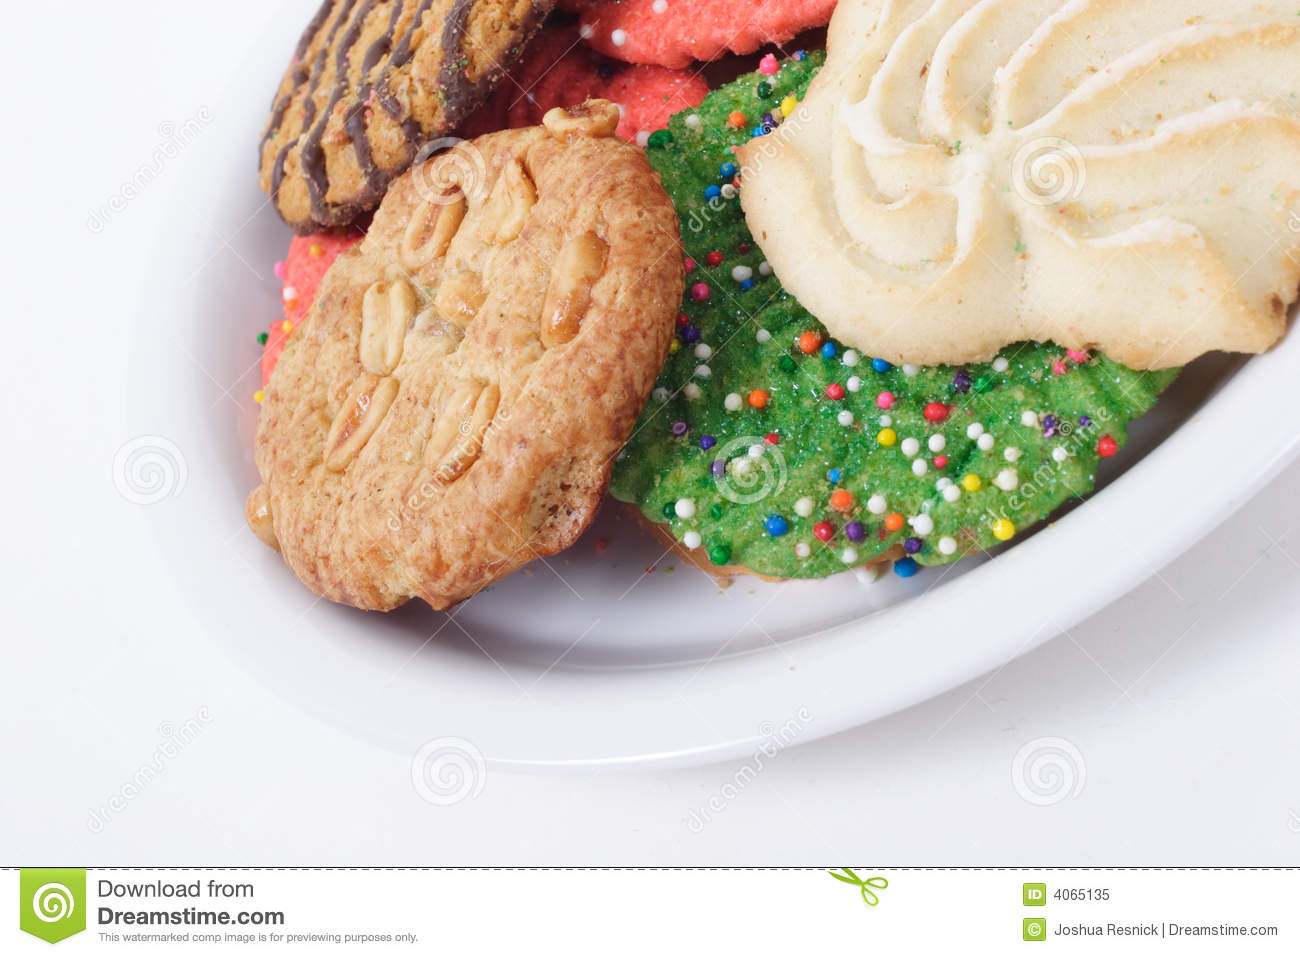 Assorted Holiday Cookies on Plate